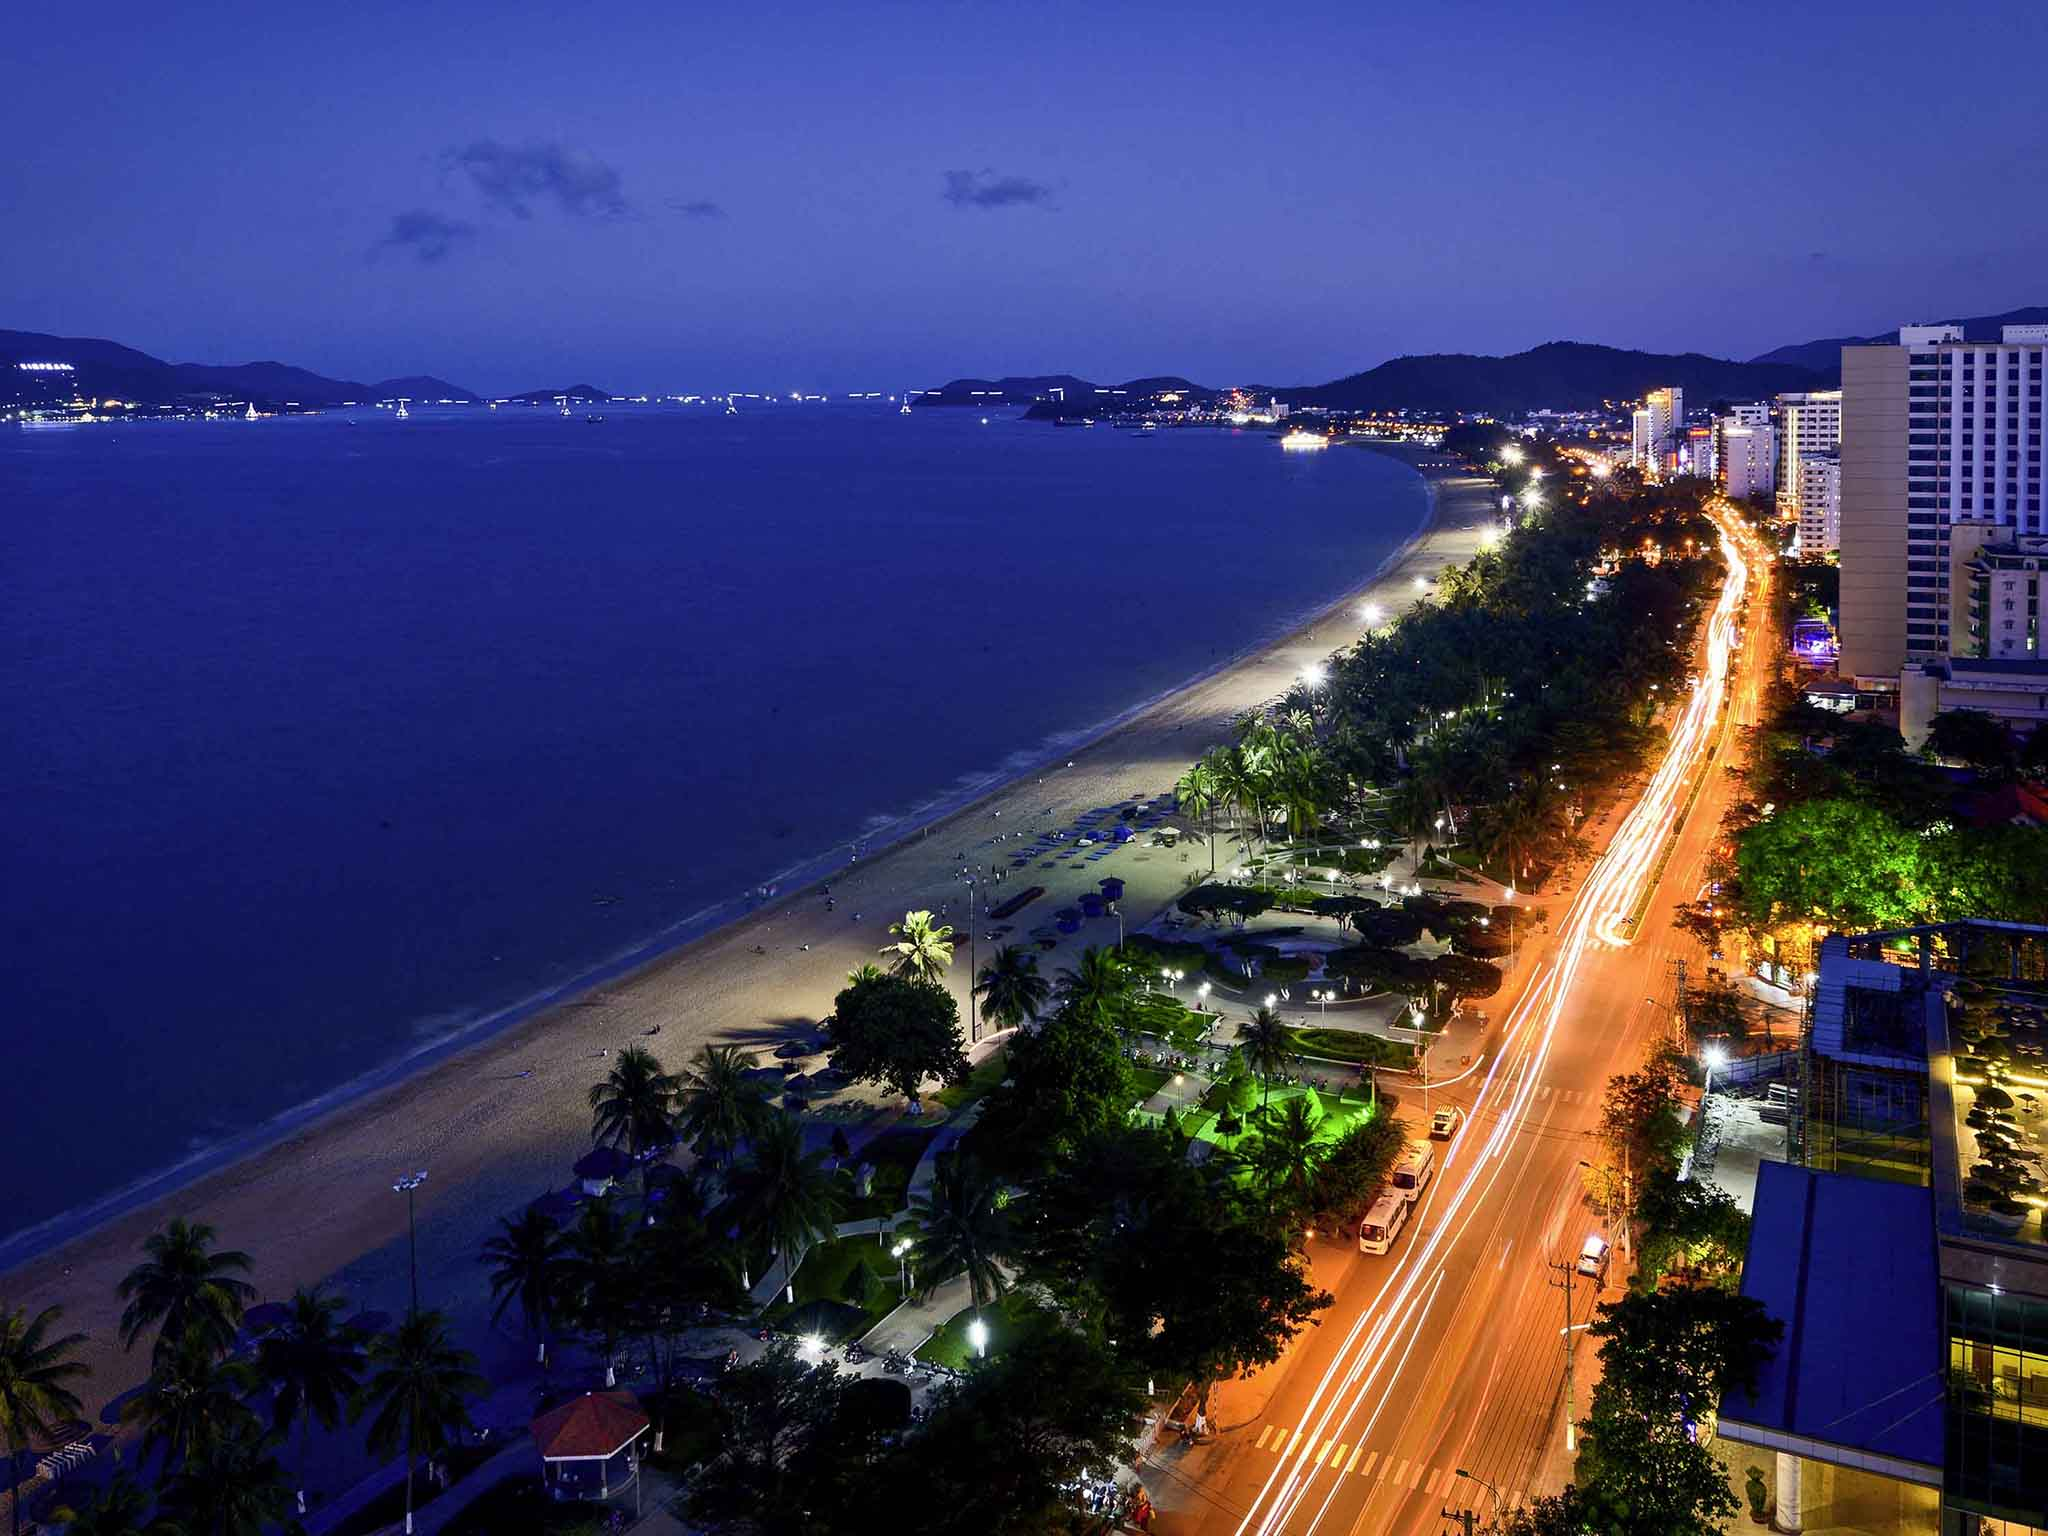 Nha Trang Break Golf Tour (4 Days 3 Nights 3 Golf Rounds)